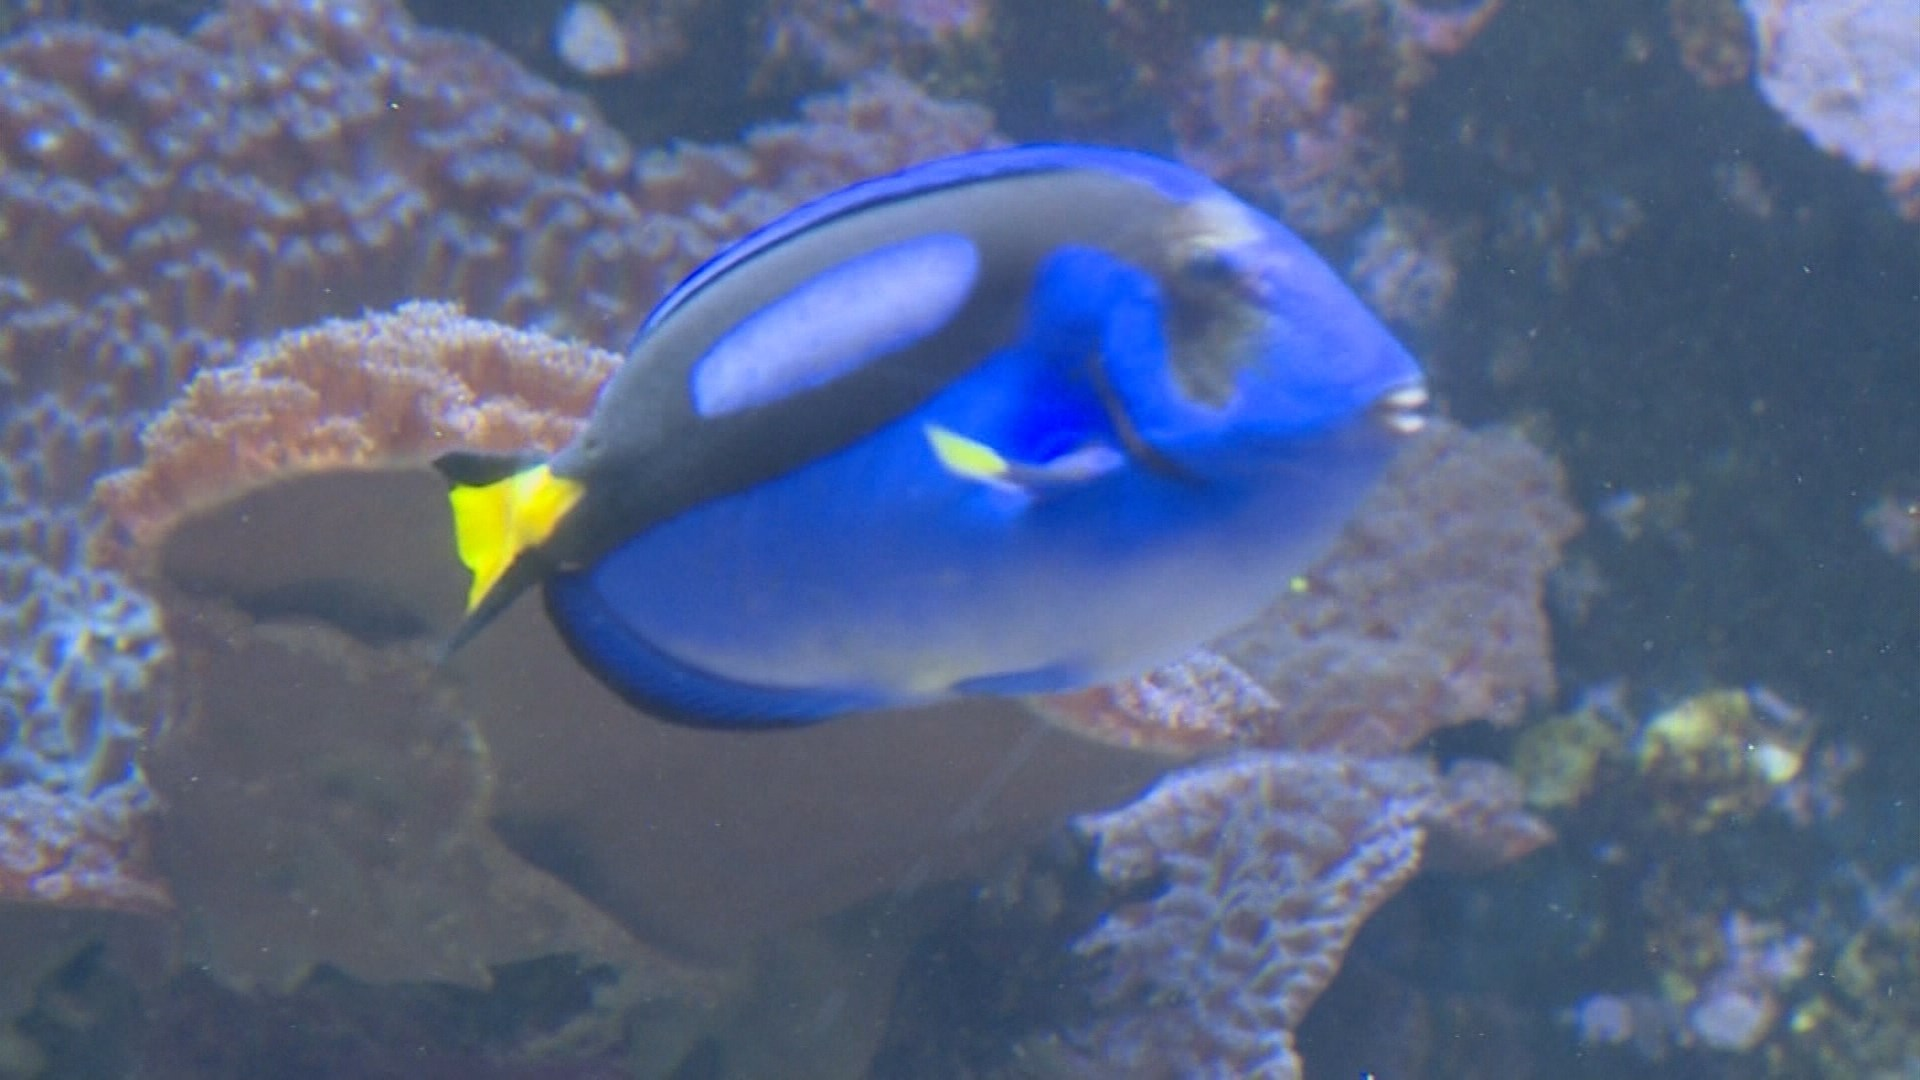 Concern 39 finding dory 39 will hurt blue tang fish for Picture of dory fish